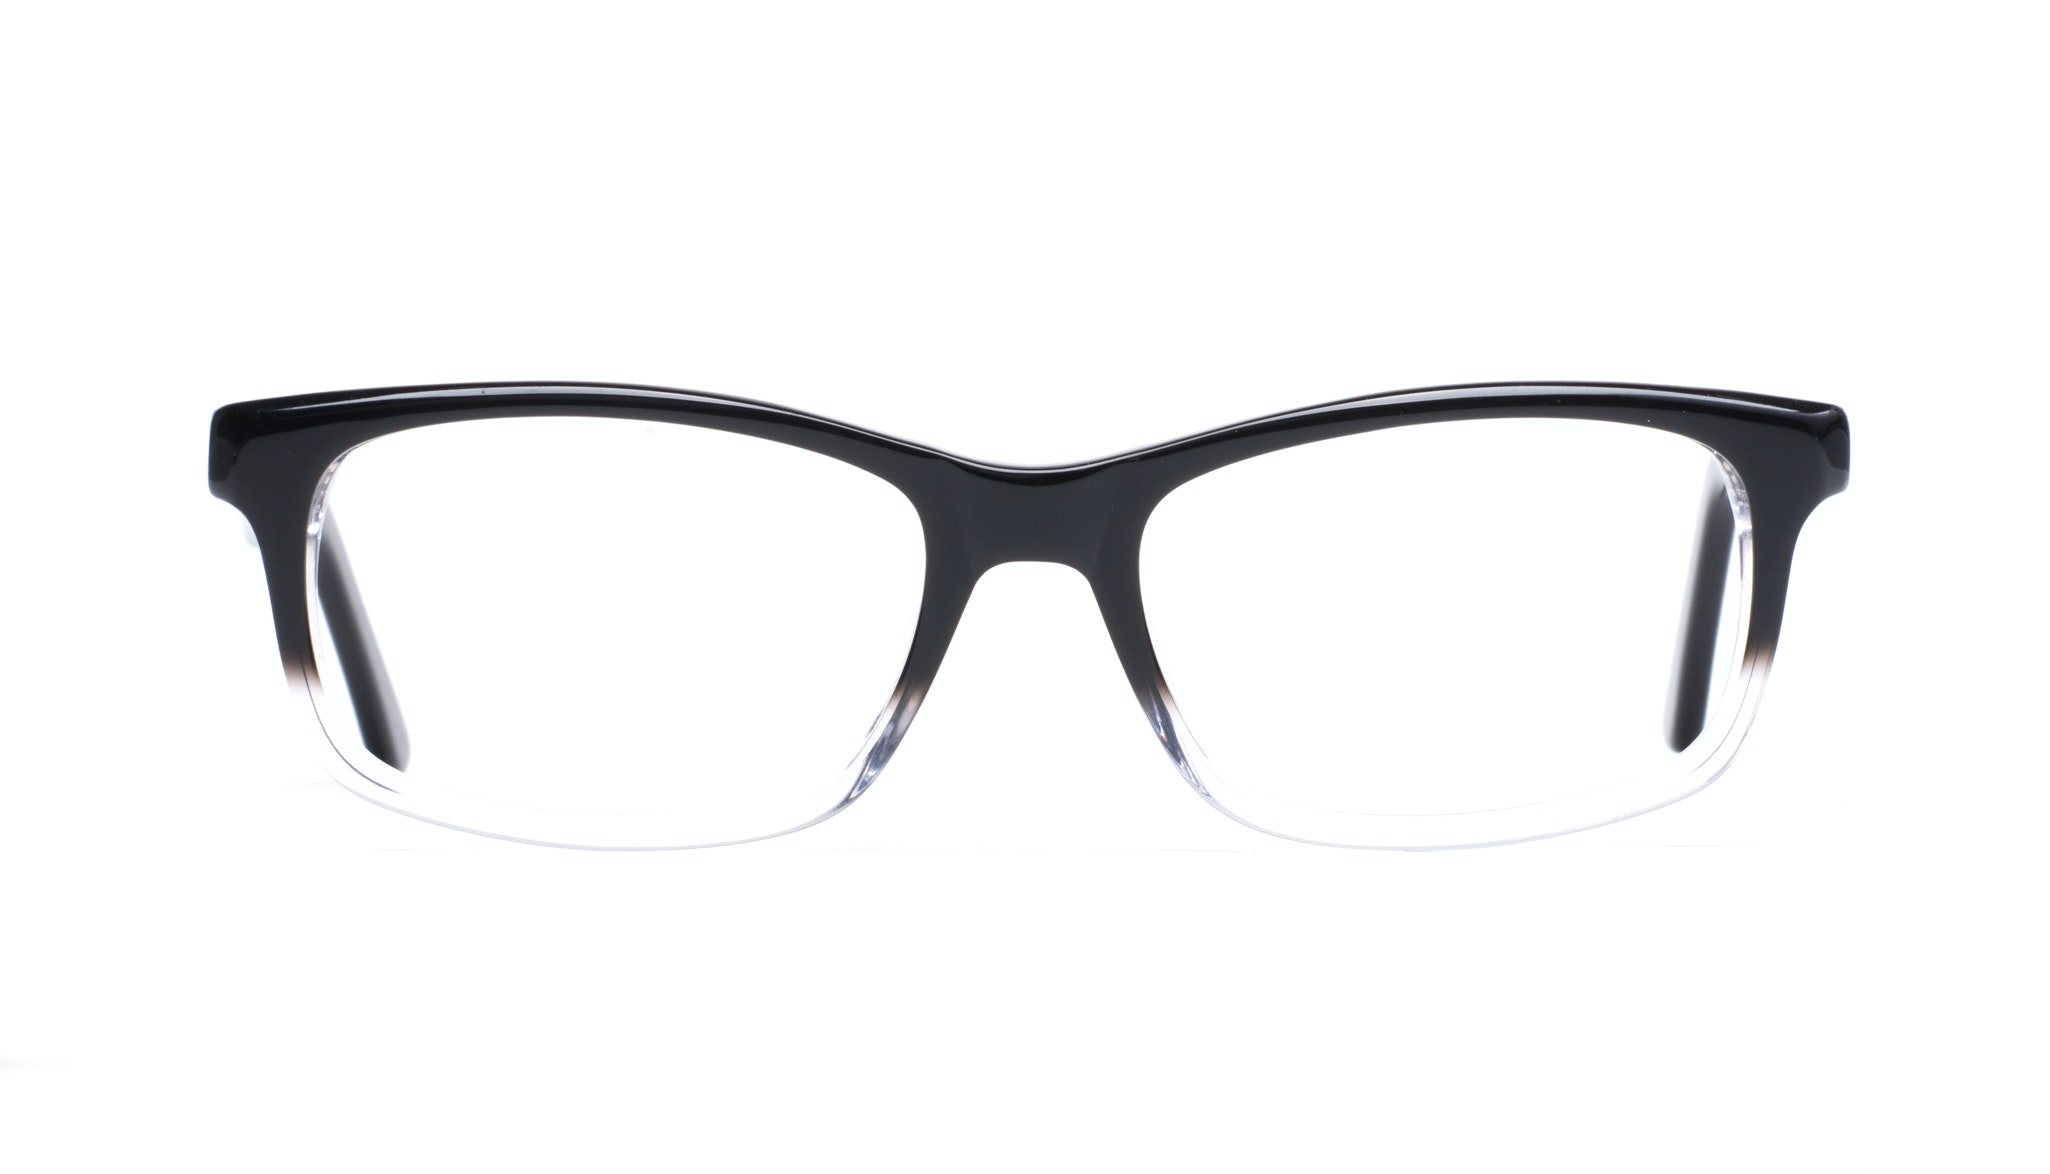 Affordable Fashion Glasses Rectangle Eyeglasses Men Women Atwater Storm